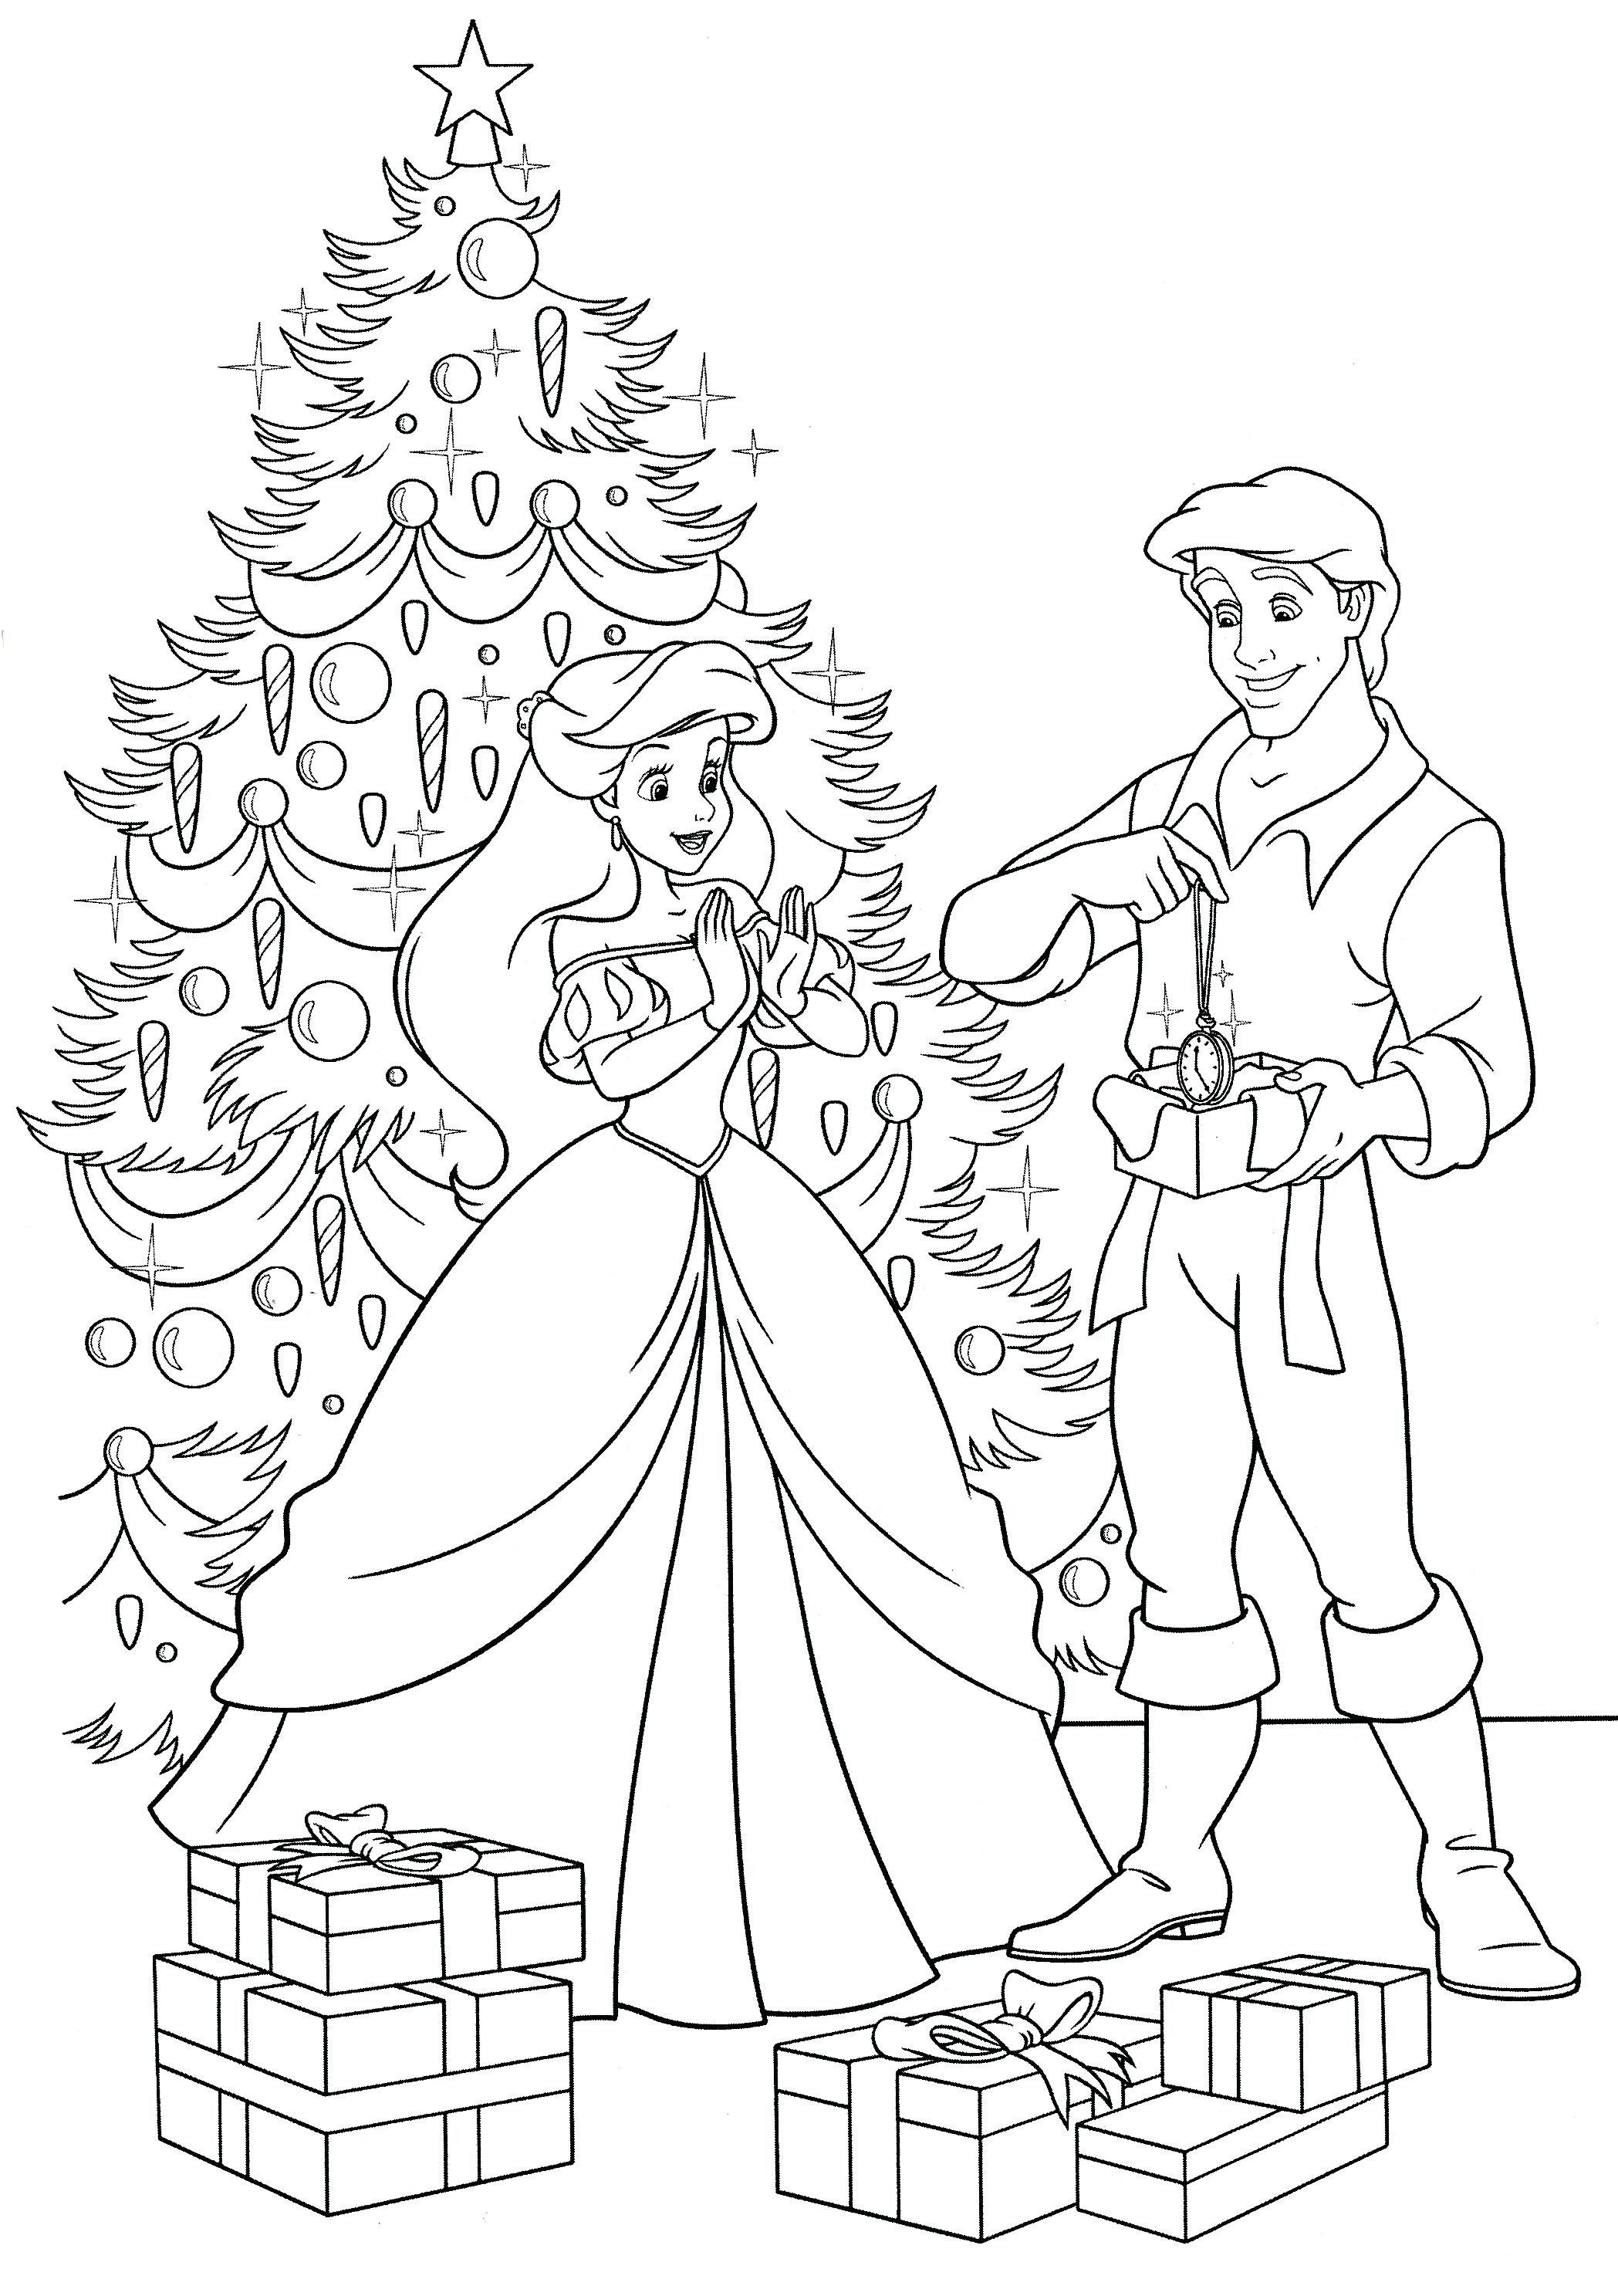 Christmas Princess Coloring Page Through The Thousand Pictures Online About Chr Mermaid Coloring Pages Disney Princess Coloring Pages Princess Coloring Pages